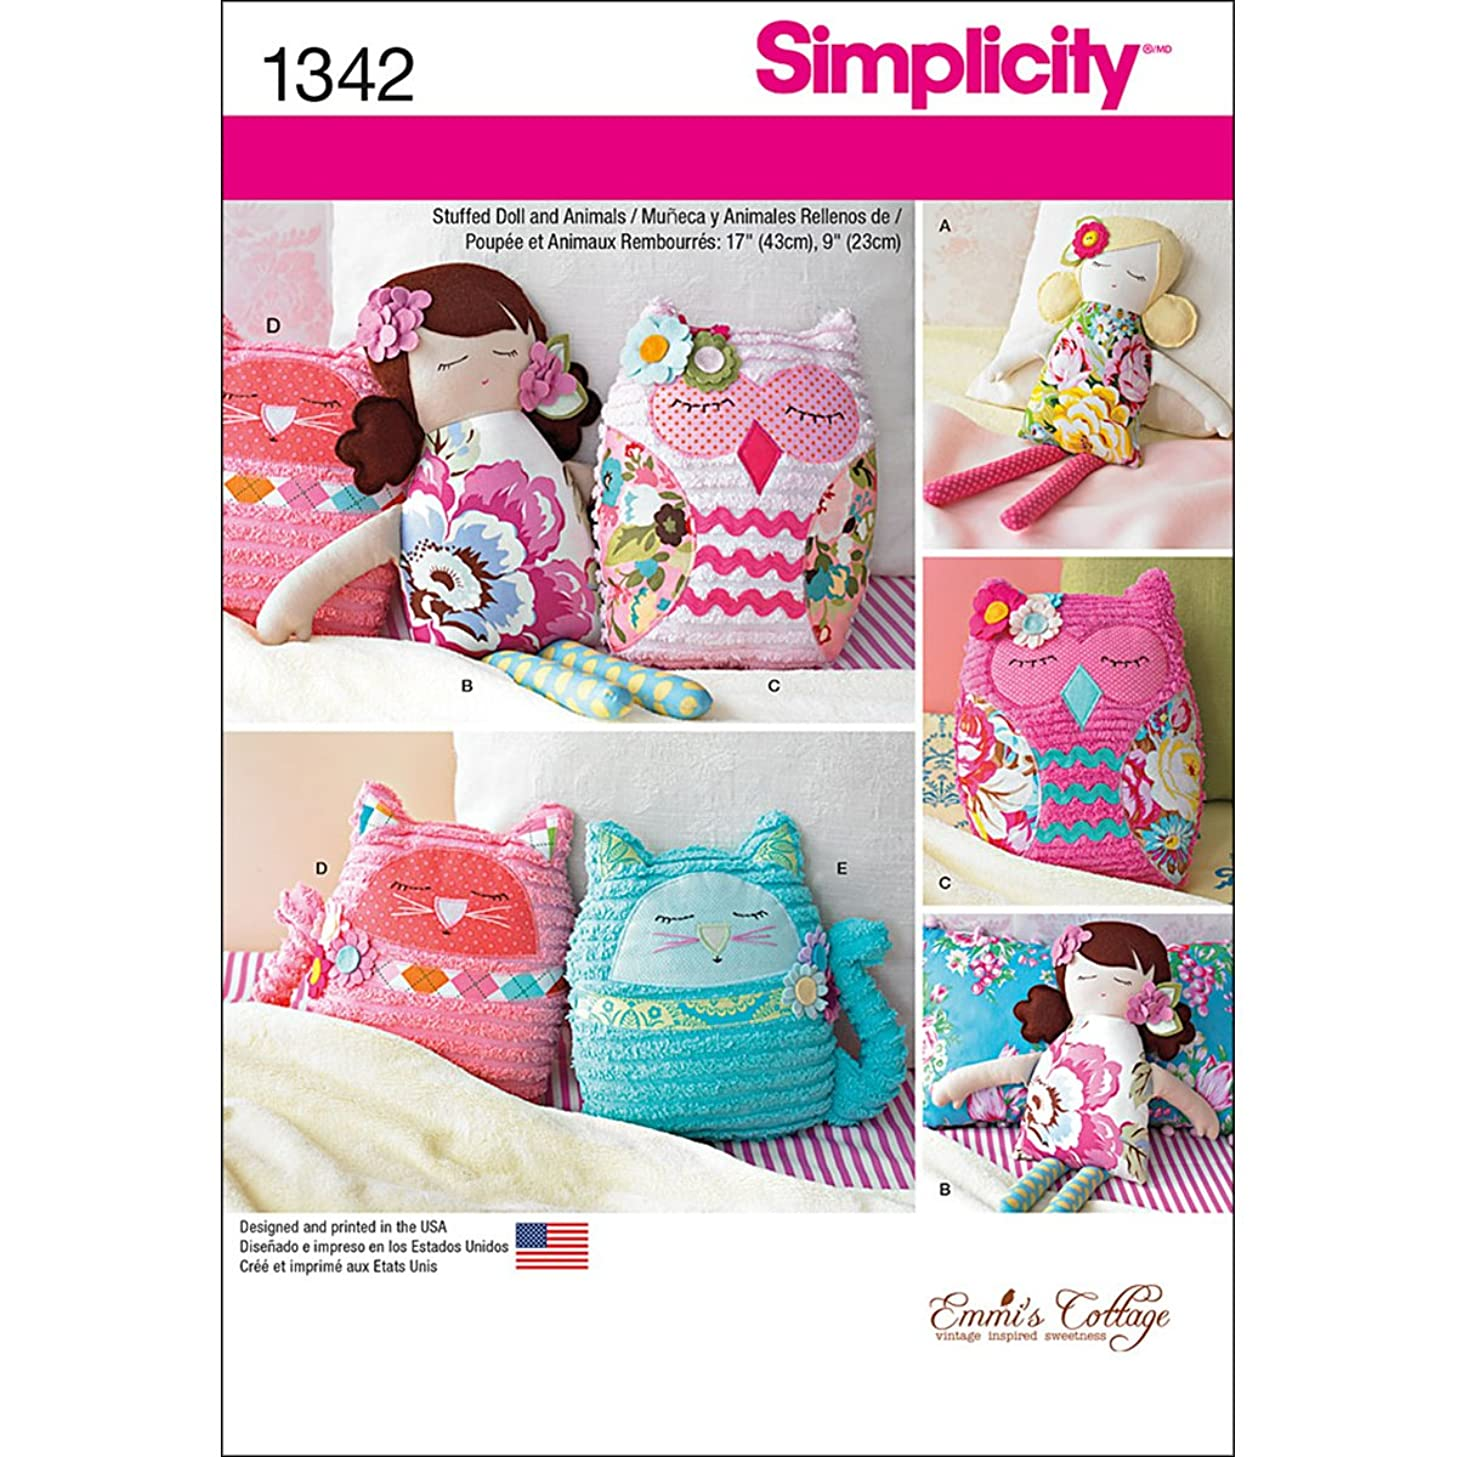 Simplicity 1342 Stuffed Animal and Doll Sewing Patterns, 17'' Doll and 9'' Animals